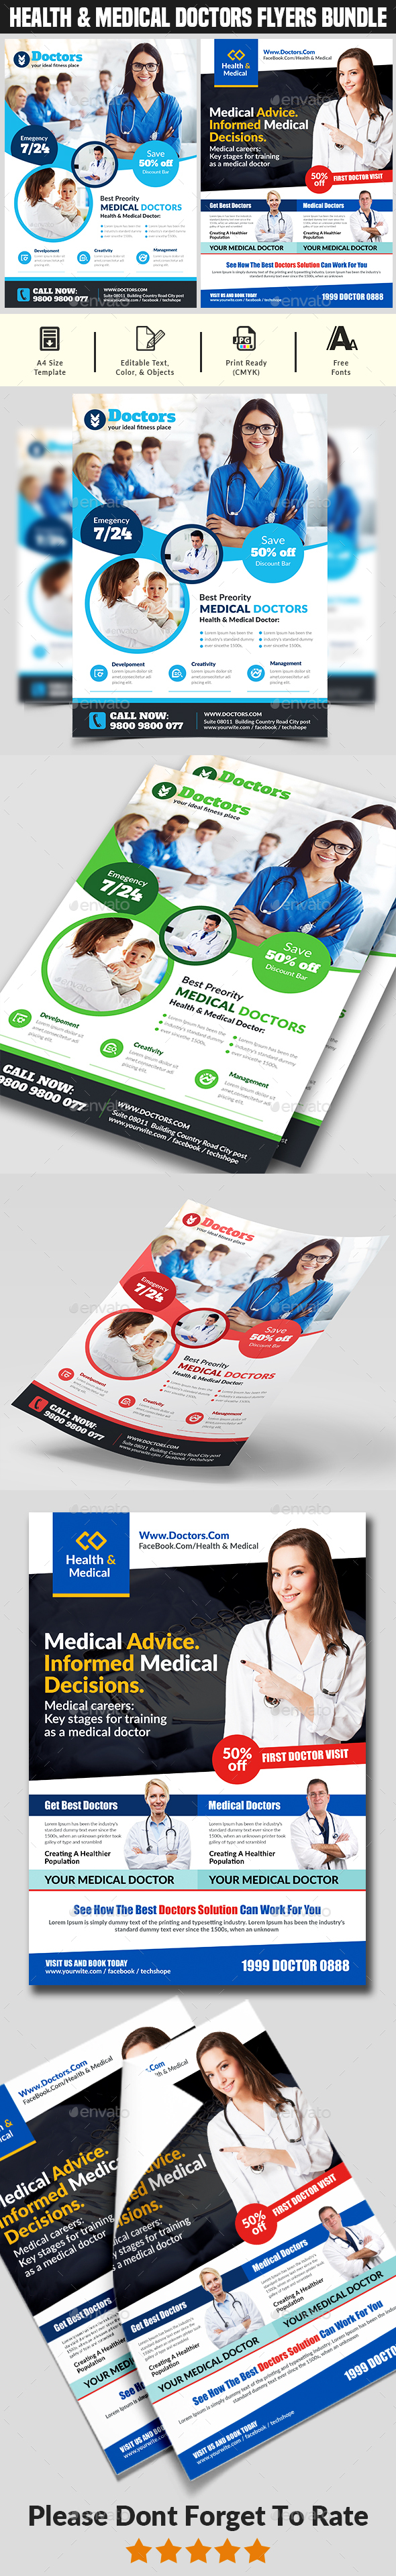 Flyers PSD – Healthful & Medcine Doctor Fleiger Bundle – Download